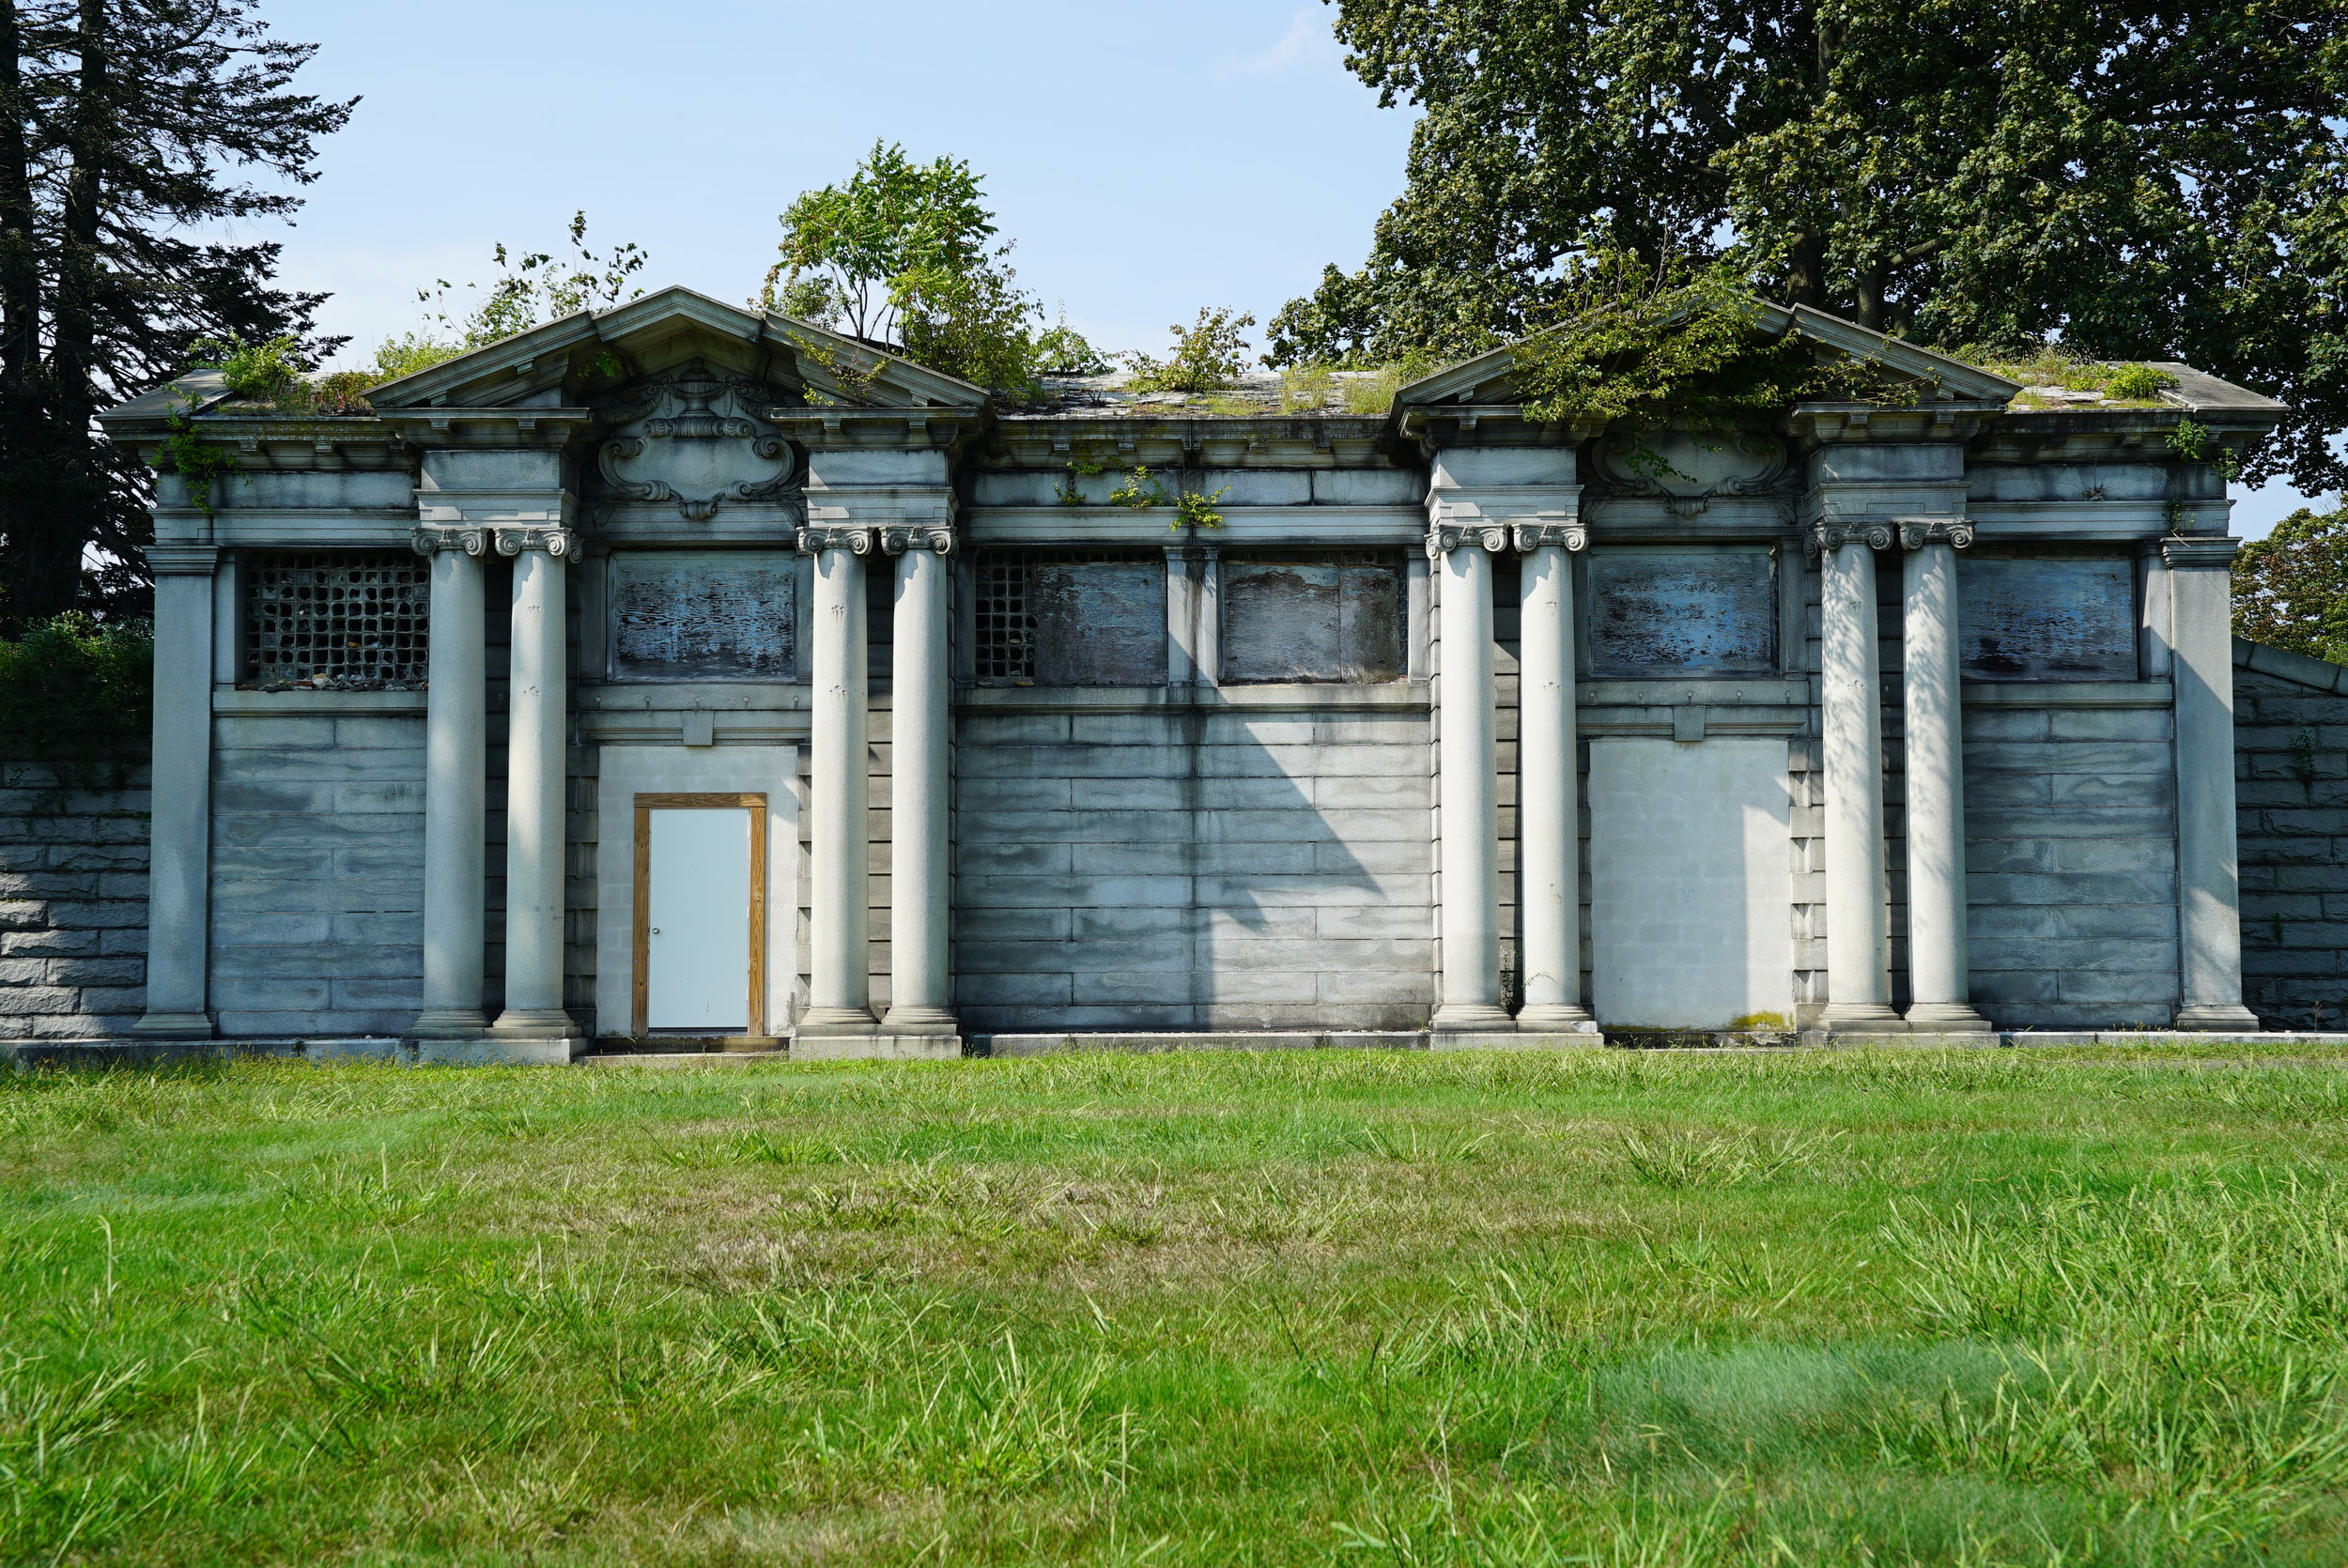 A beautiful old structure at Forest Hills Cemetery. Huntingdon Valley, Pennsylvania. The structure's upkeep does not appear to be a priority.